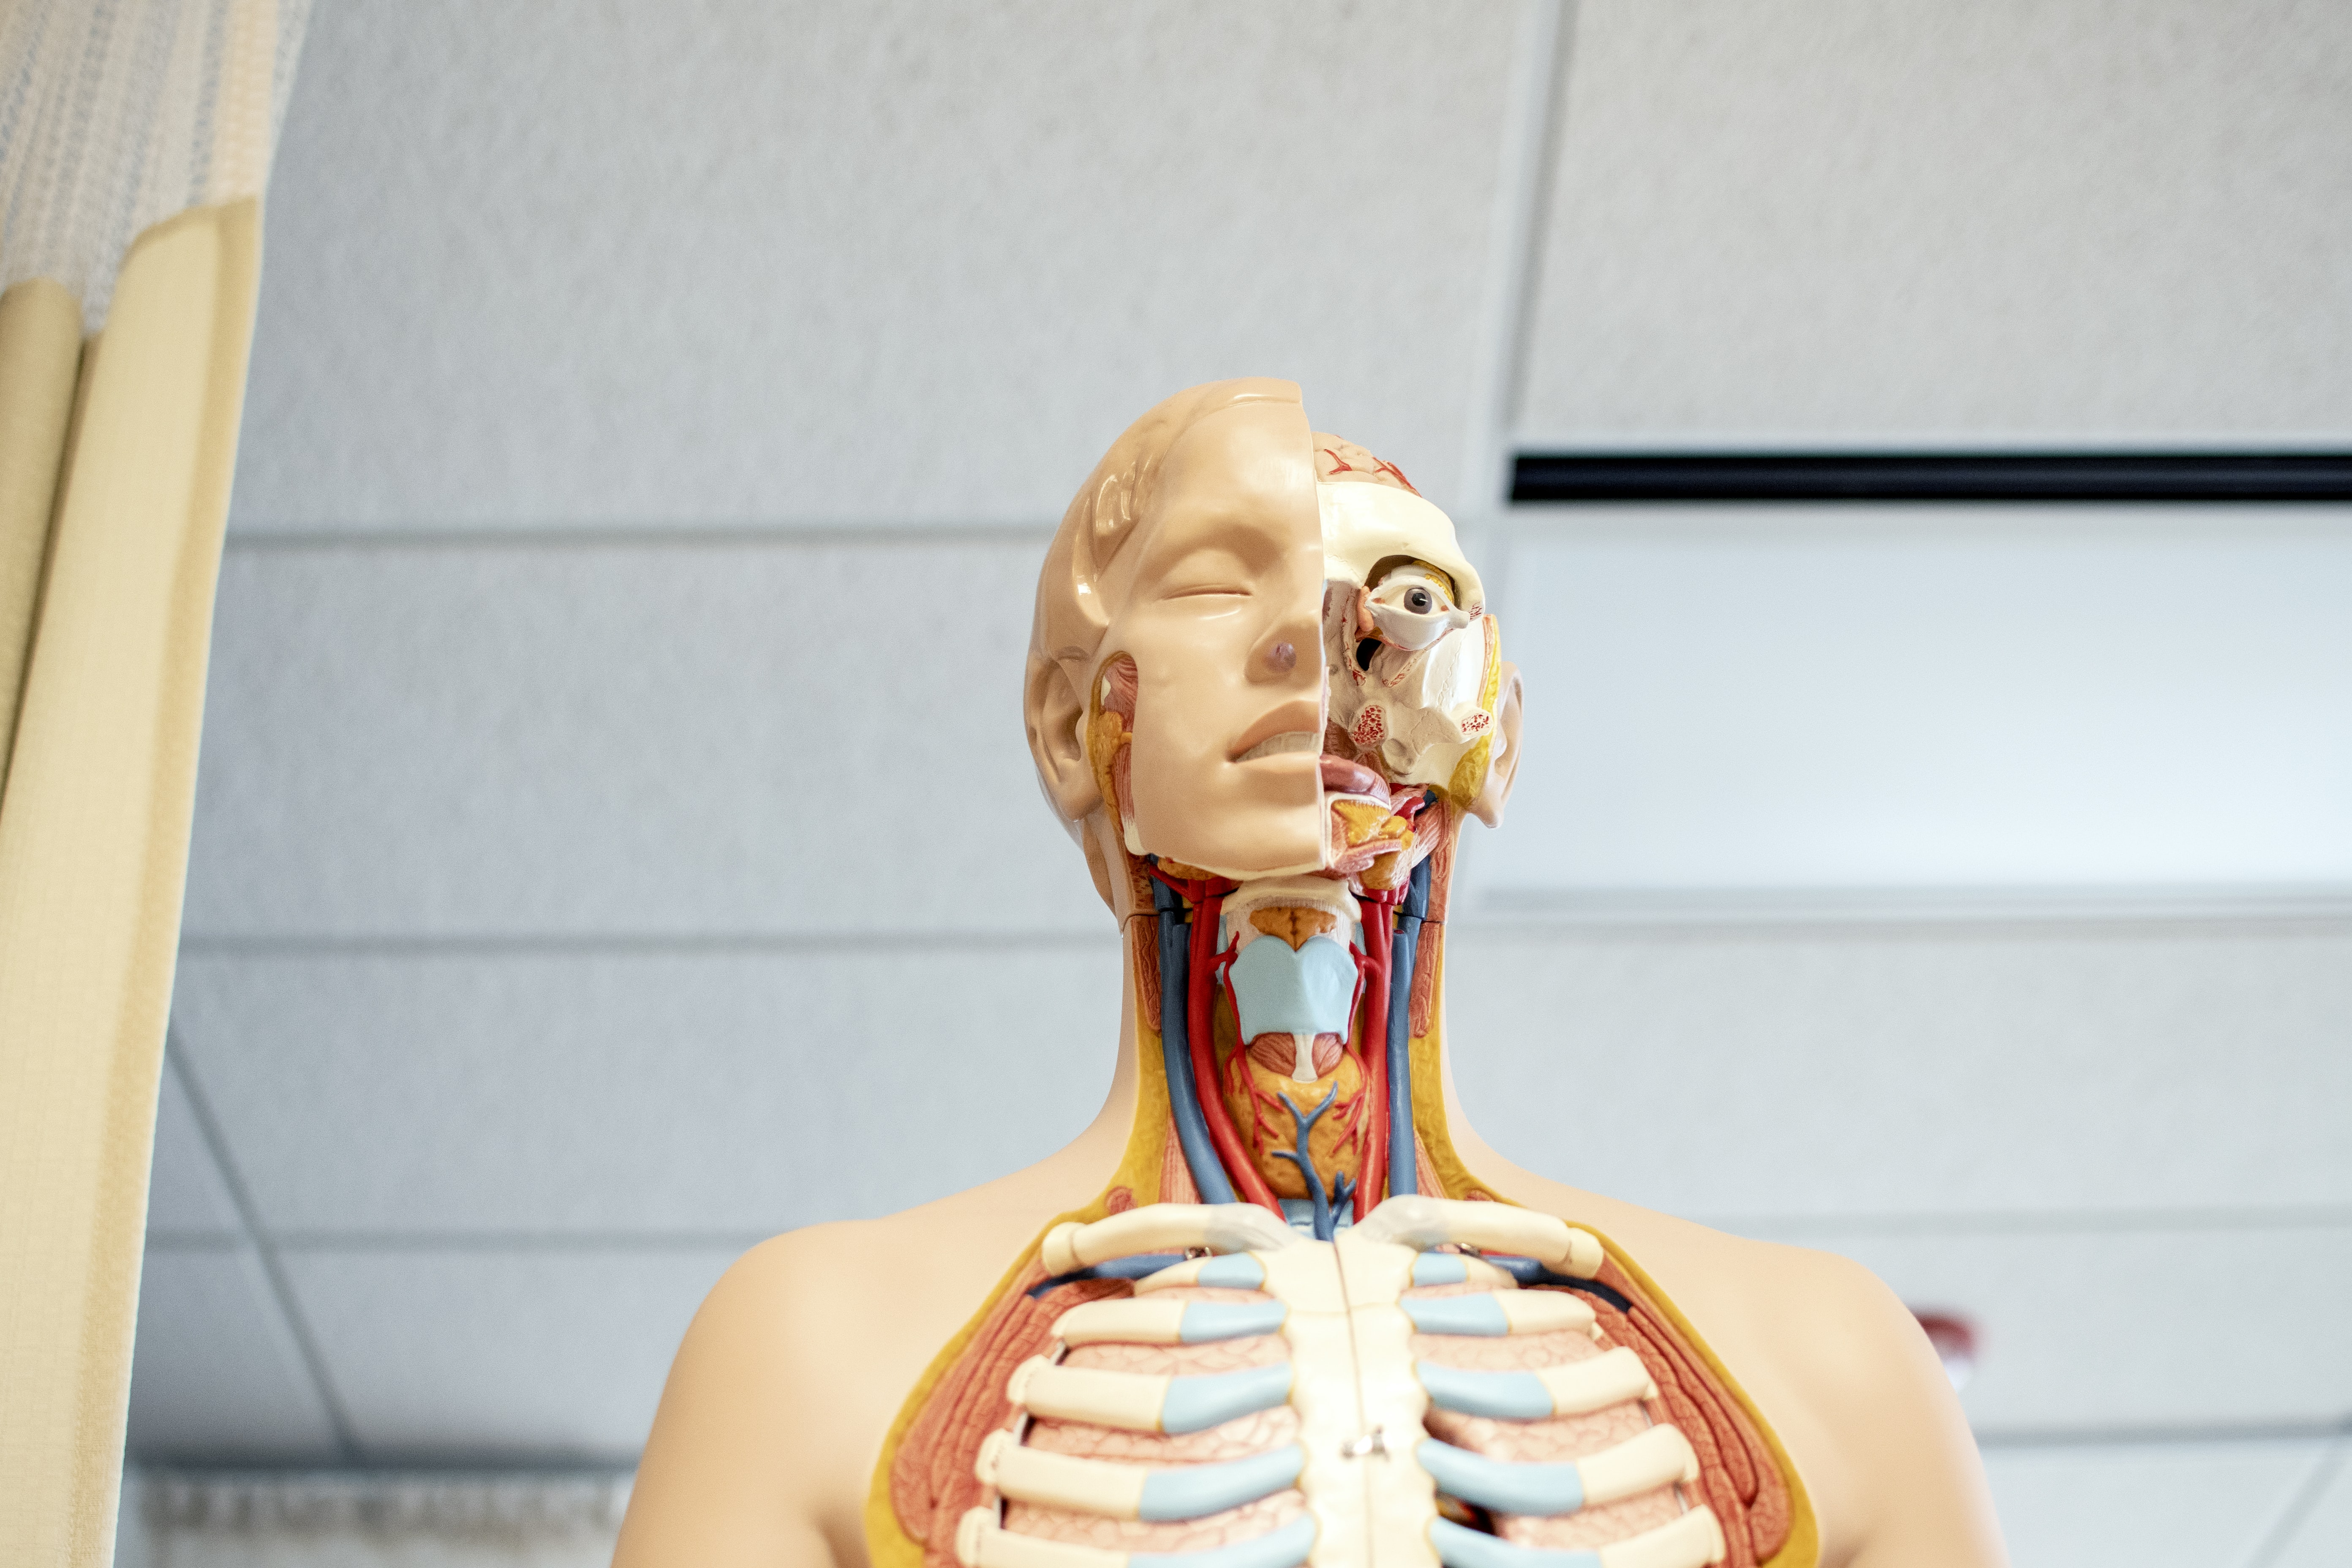 human anatomy figure below white wooden ceiling